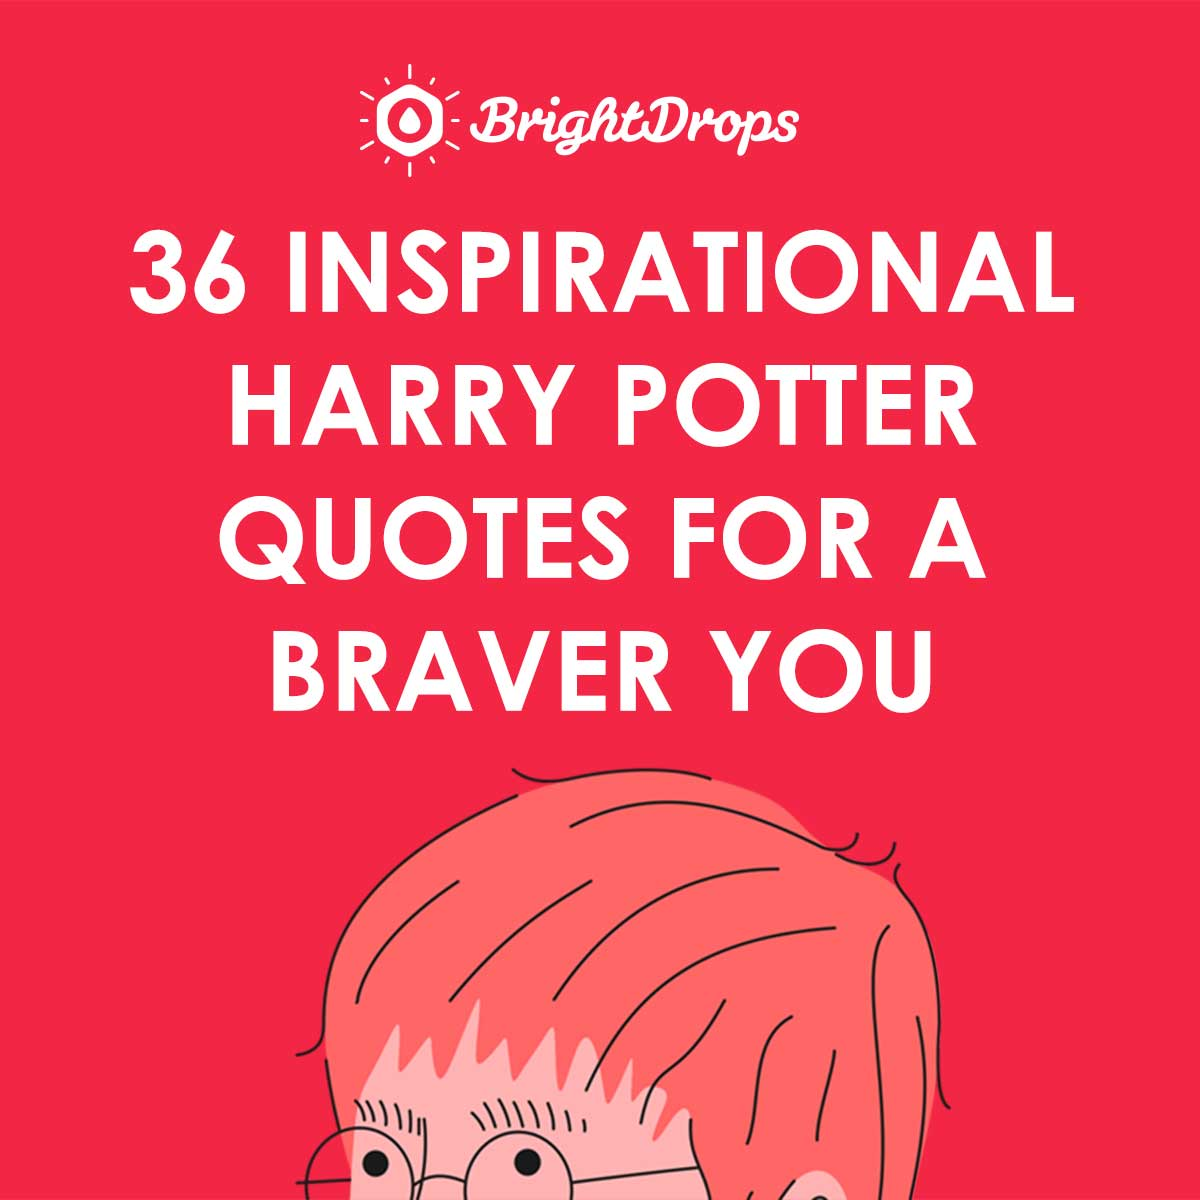 Short Harry Potter Quotes 36 Inspirational Harry Potter Quotes for a Braver You Short Harry Potter Quotes